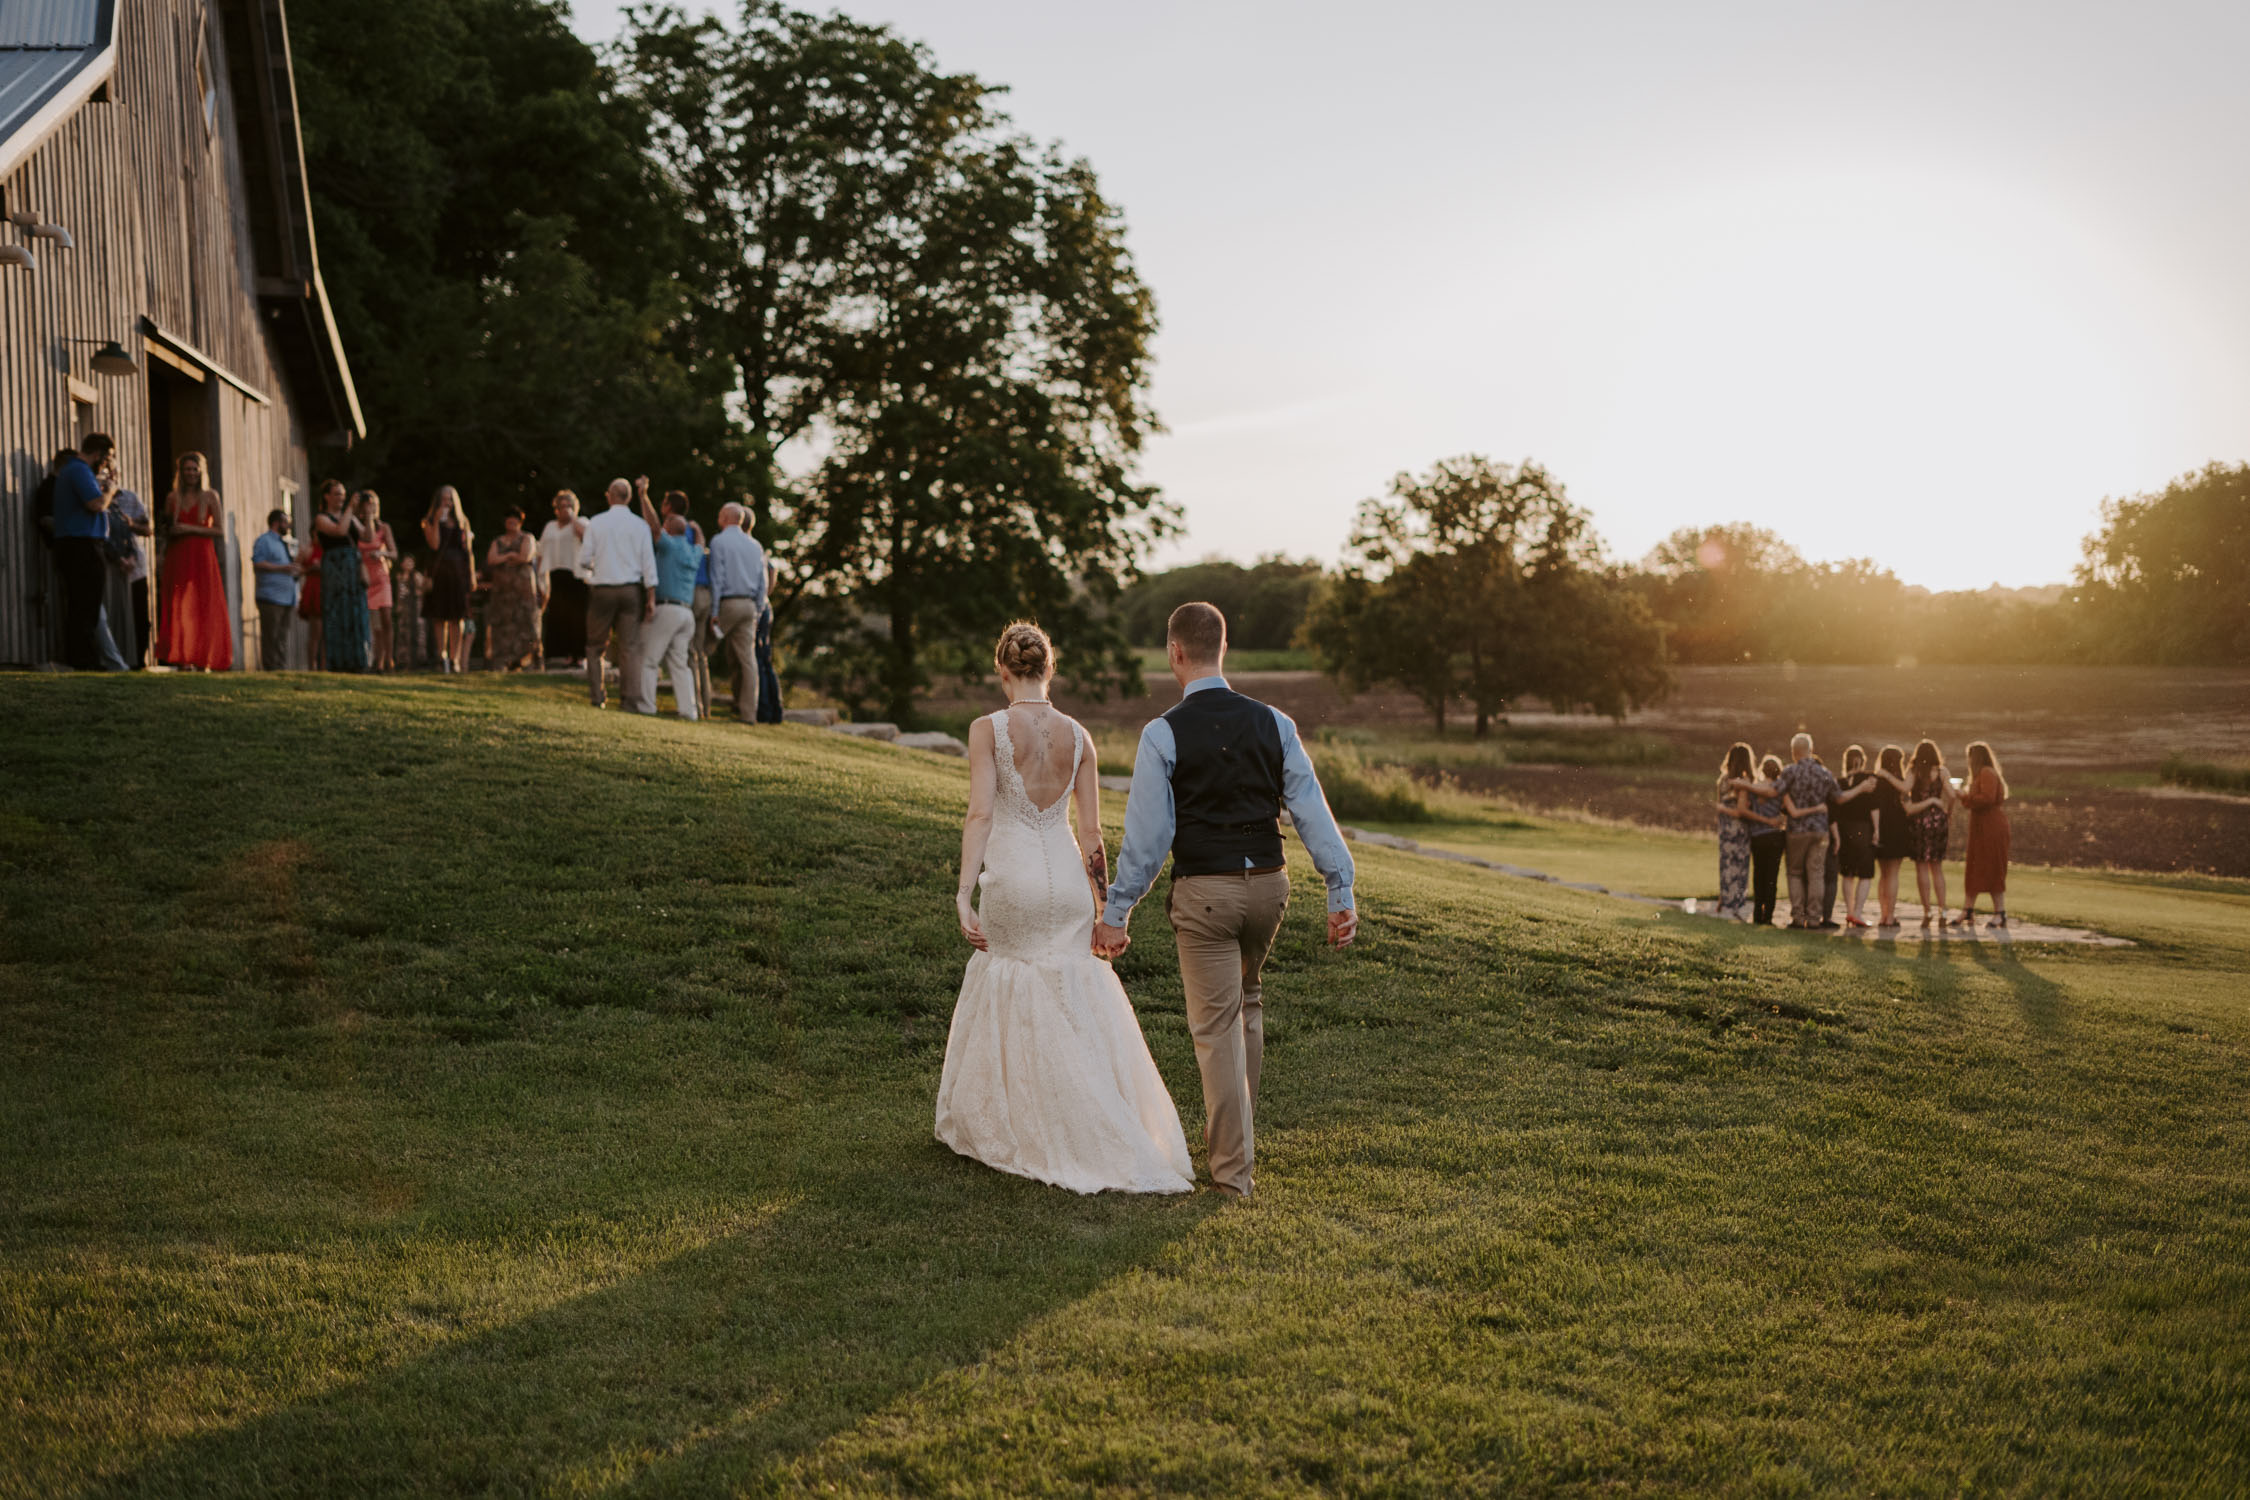 Jess&KyleCochran Wedding 561.jpgSchwinn Produce Farm Wedding in Leavenworth - Lenexa - Lawrence, Kansas by Destination Wedding & Elopement Photographer | Kayli LaFon Photography